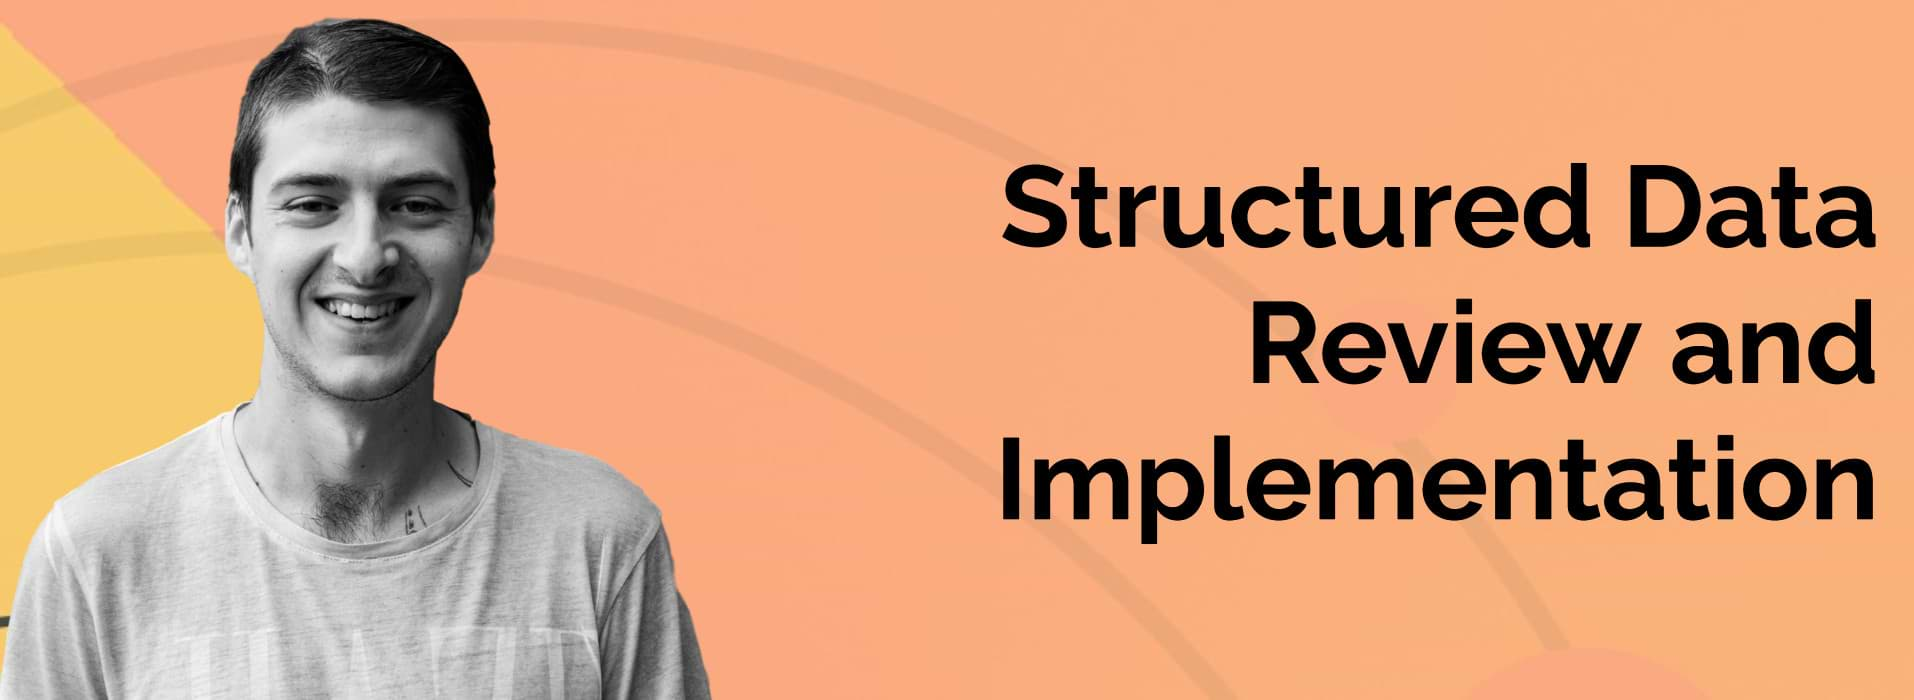 Structured Data Review and Implementation